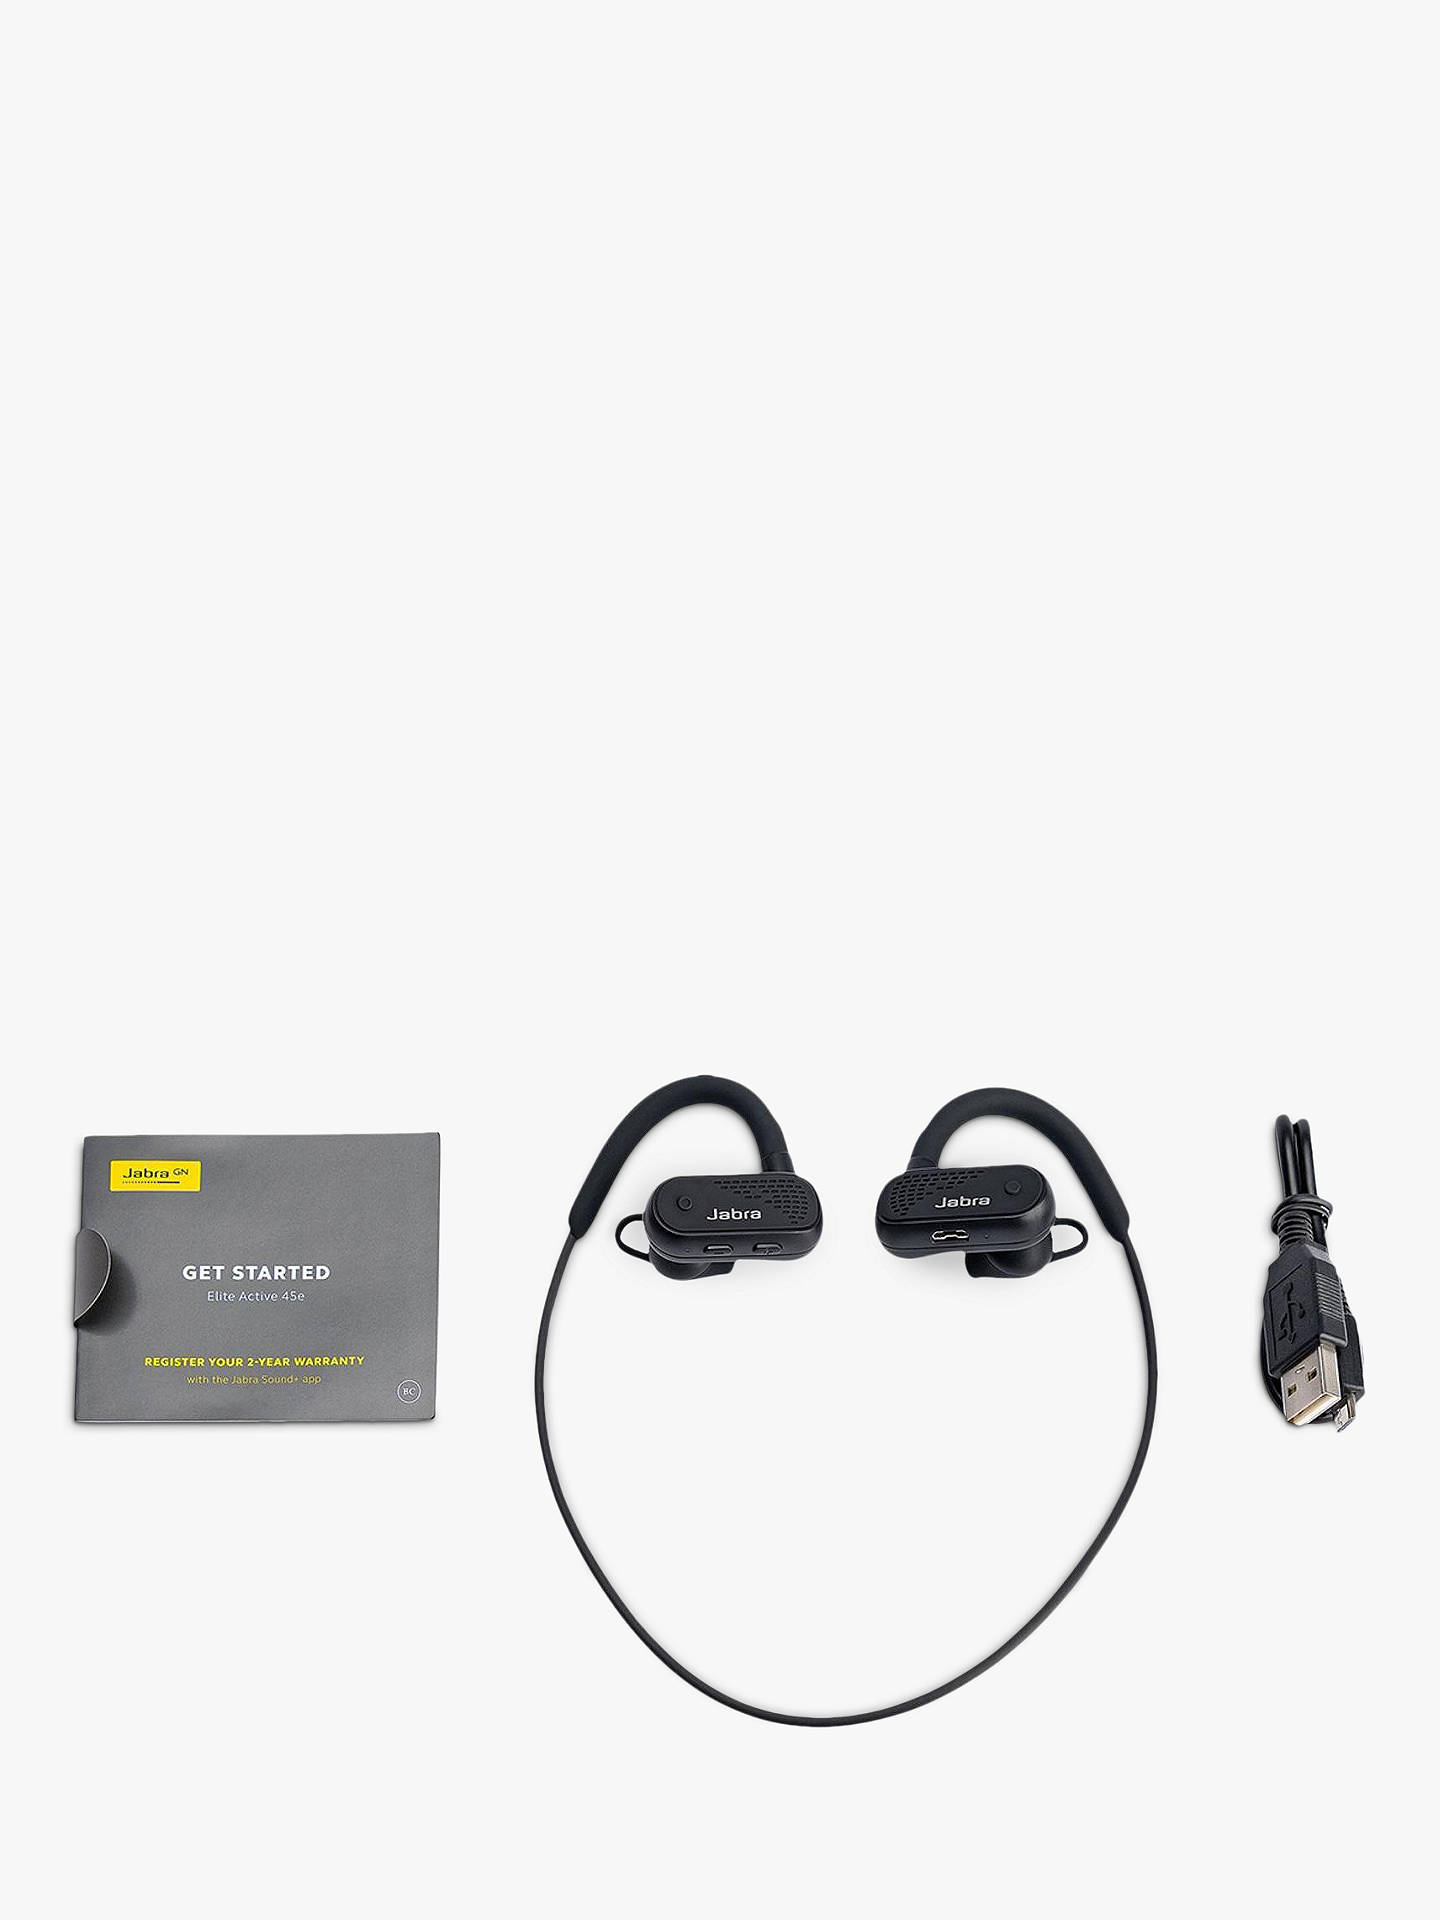 Jabra Elite 45e Active Wireless Waterproof Bluetooth In Ear Headphones With Mic Remote At John Lewis Partners